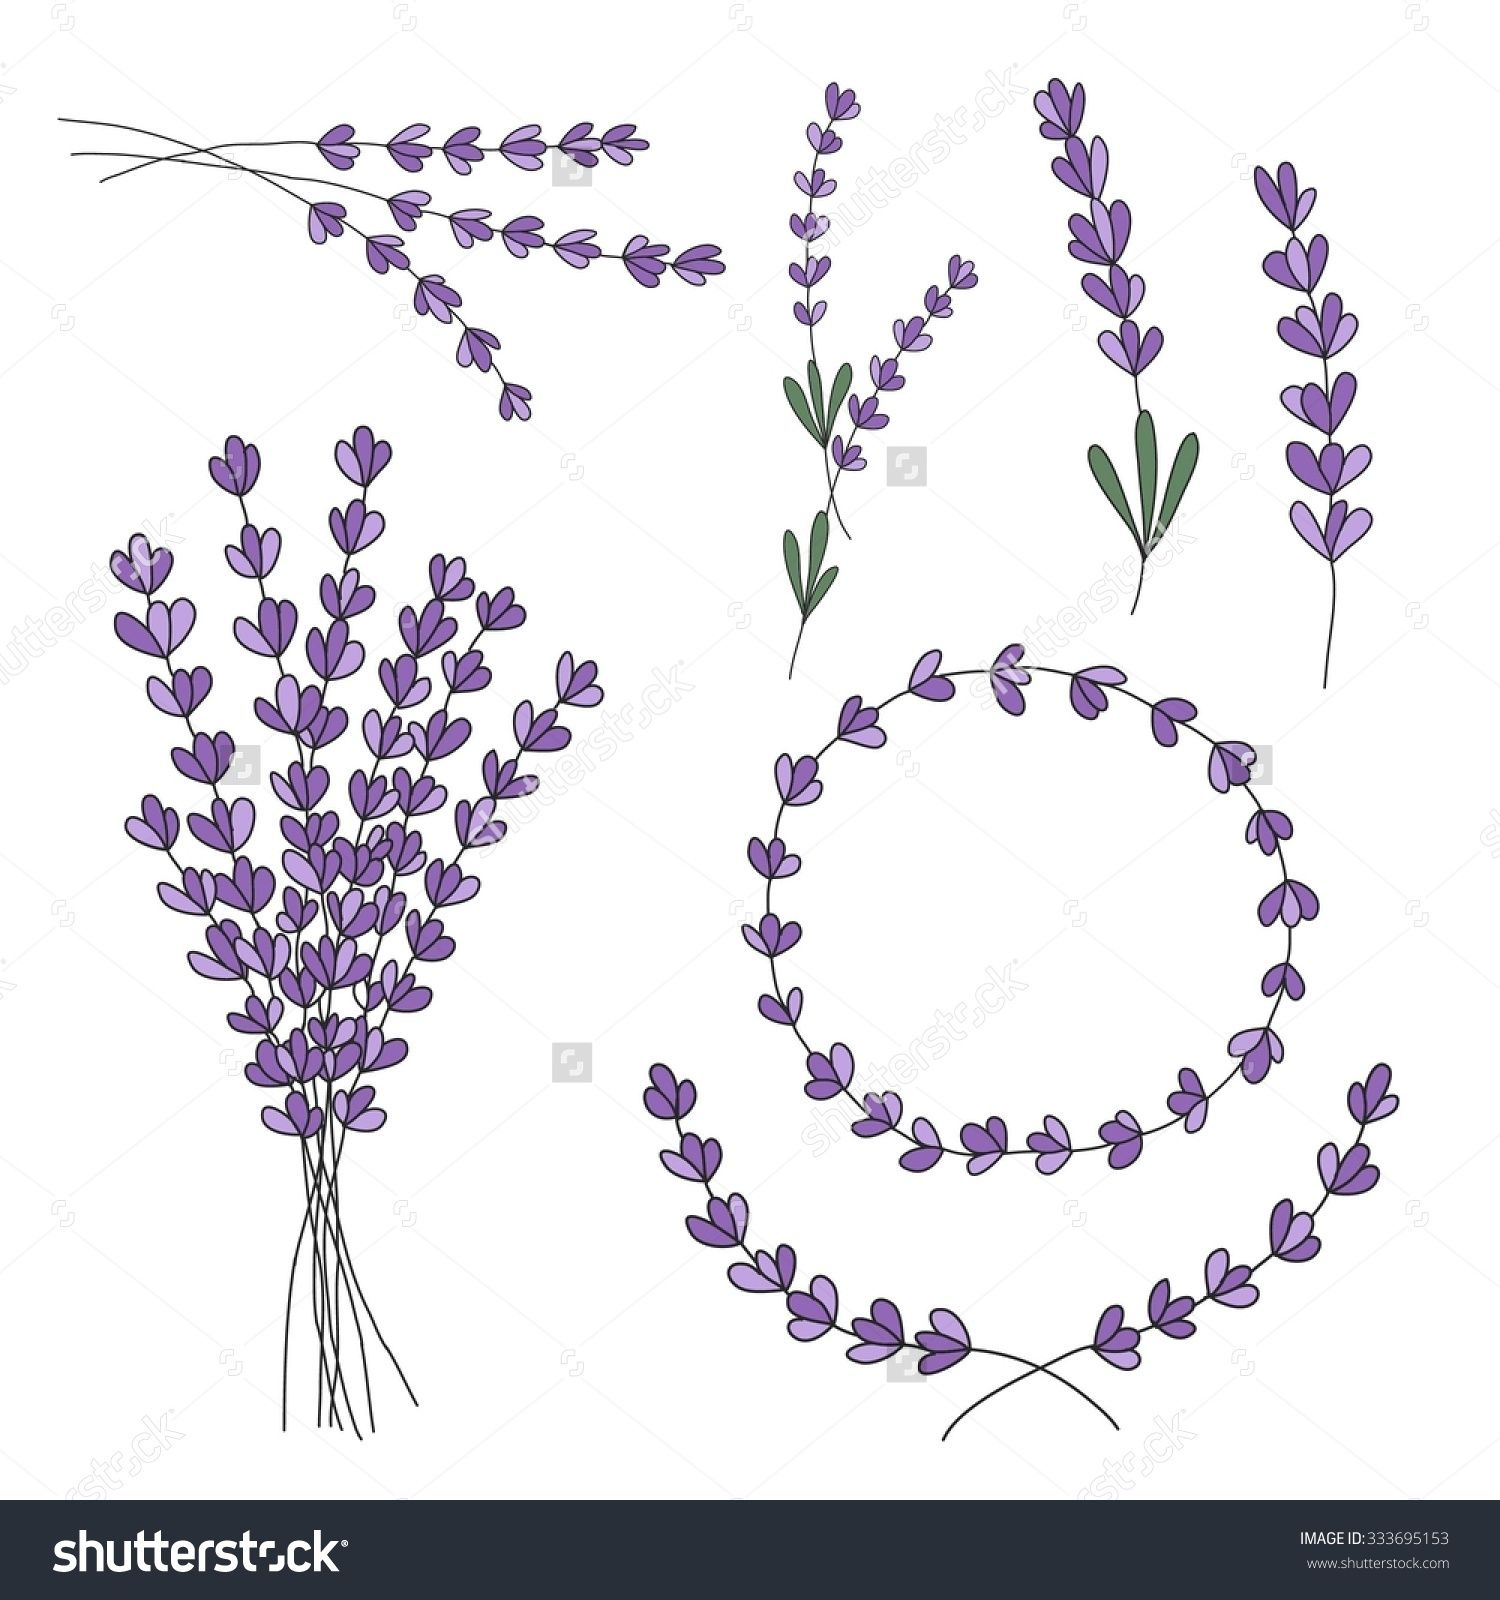 Line Drawing Lavender : Lavender drawing google search pinterest